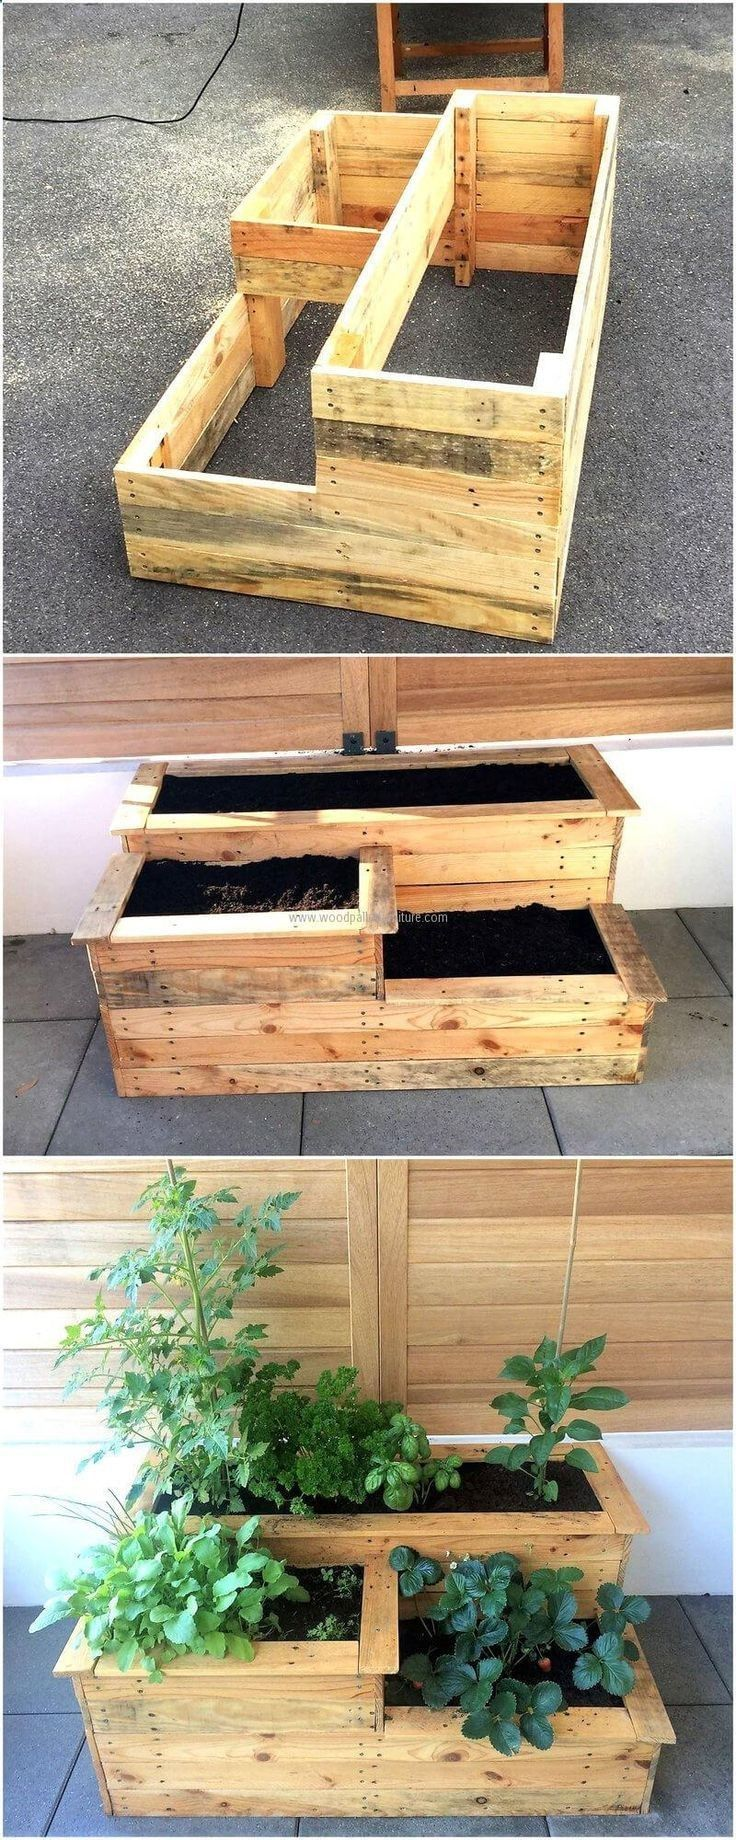 Woodworking - Wood Profit - For the decoration lovers, here is an idea for decorating the home in a unique way with the repurposed wood. Or you can also use new pressure treated Southern Yellow Pine from hative.com Discover How You Can Start A Woodworking Business From Home Easily in 7 Days With NO Capital Needed!